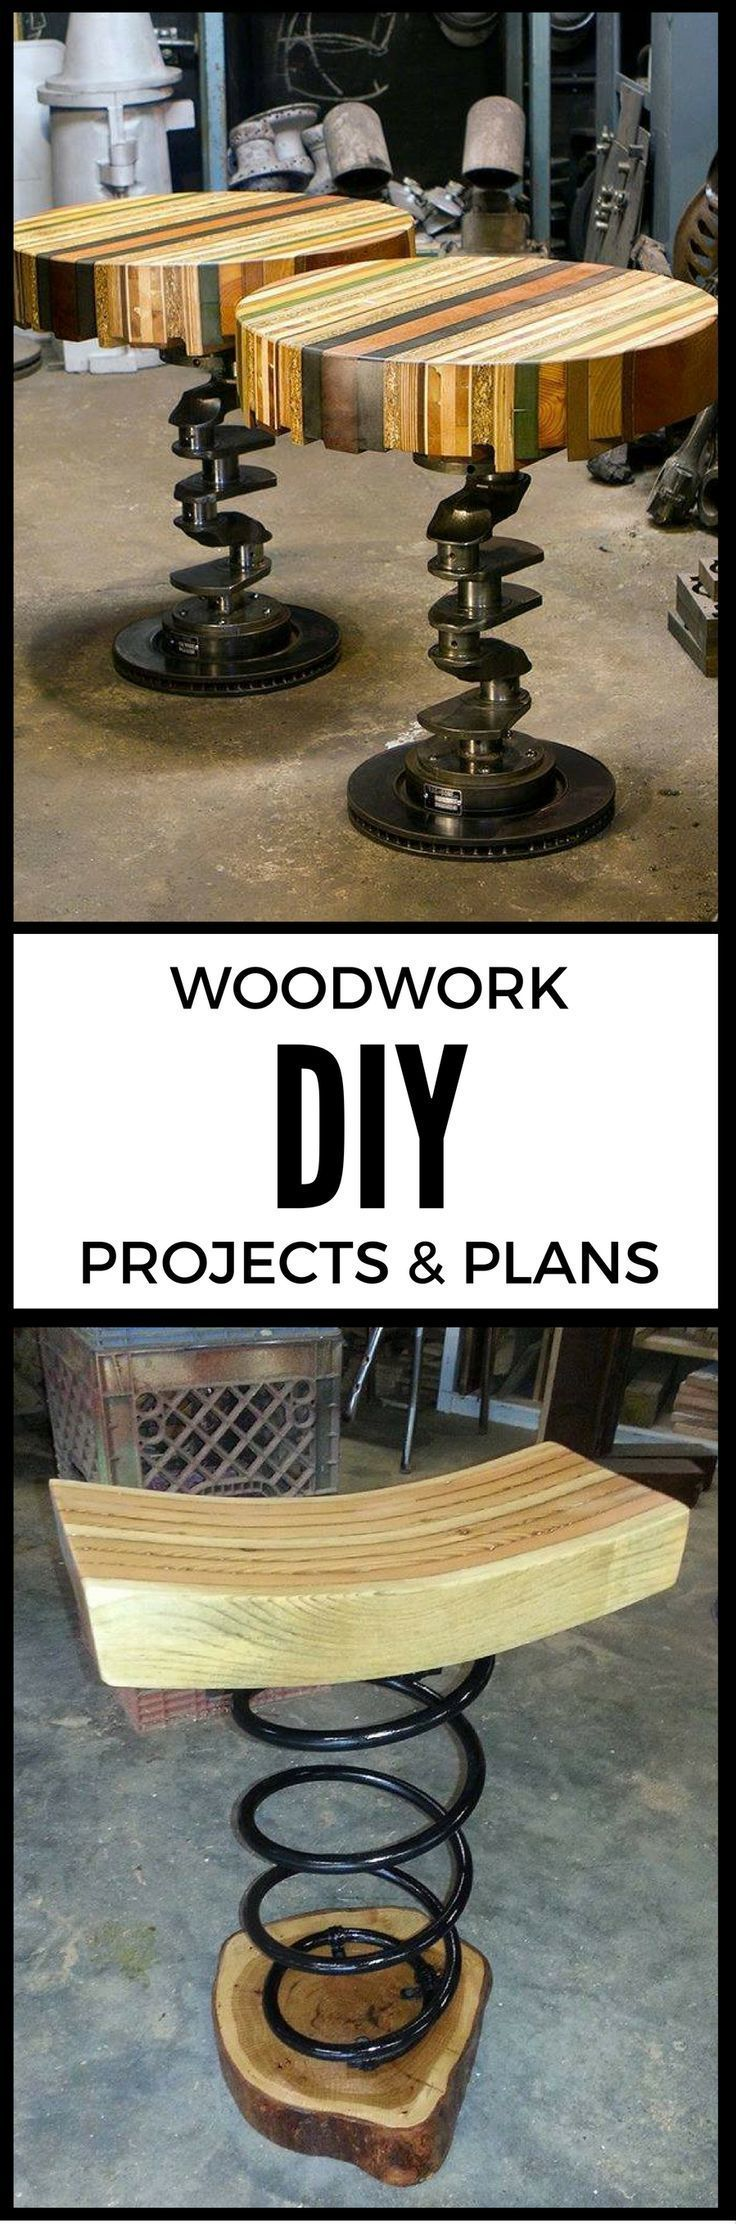 Woodworking Plans, projects and Ideas http://vid.staged.com/cuMs #woodworkingplans